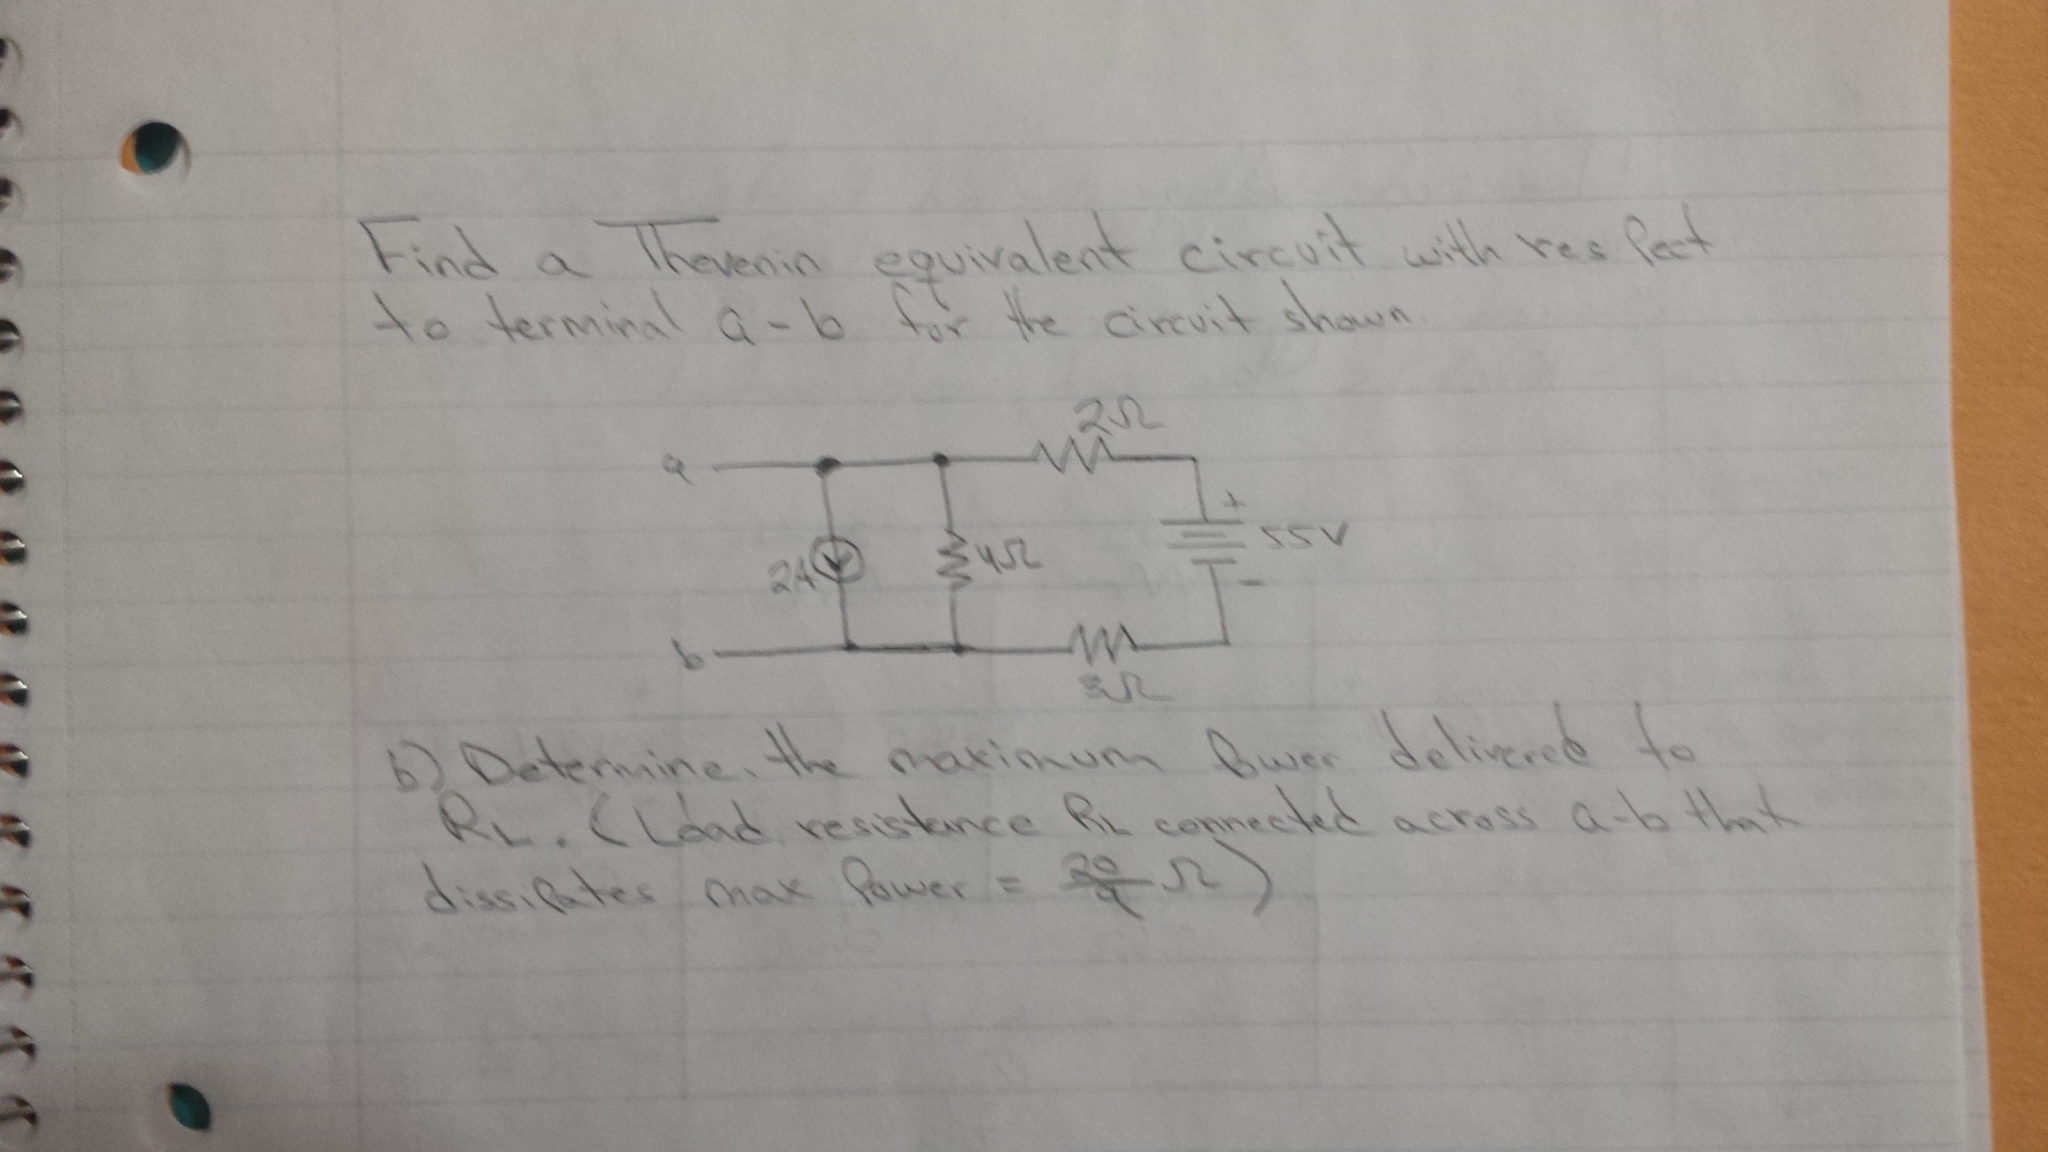 Find a Thevenin equivalent circuit with respect to